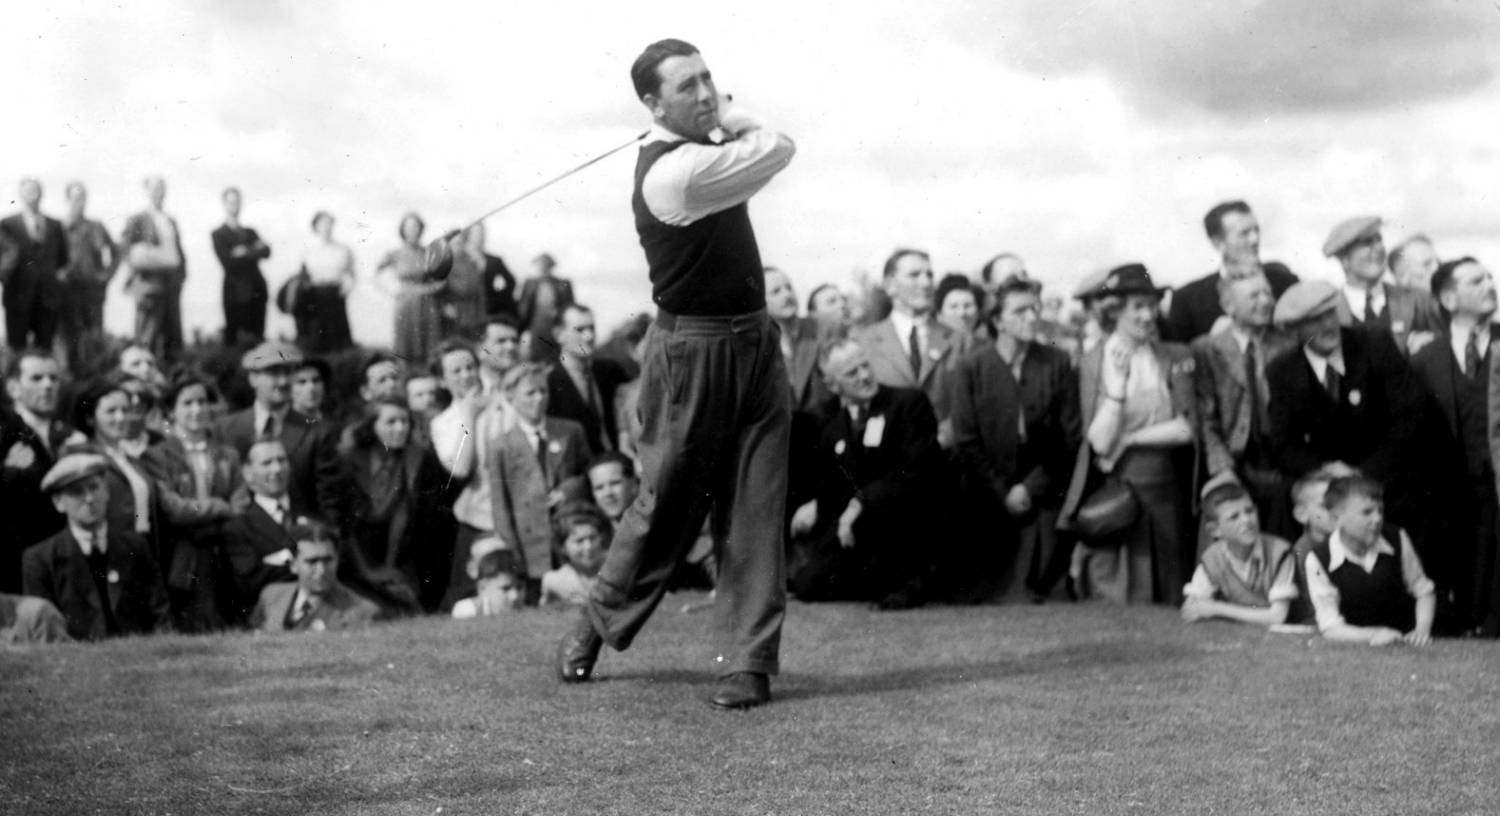 When Harry Bradshaw was undone by Lady Luck and the brilliance of Bobby Locke